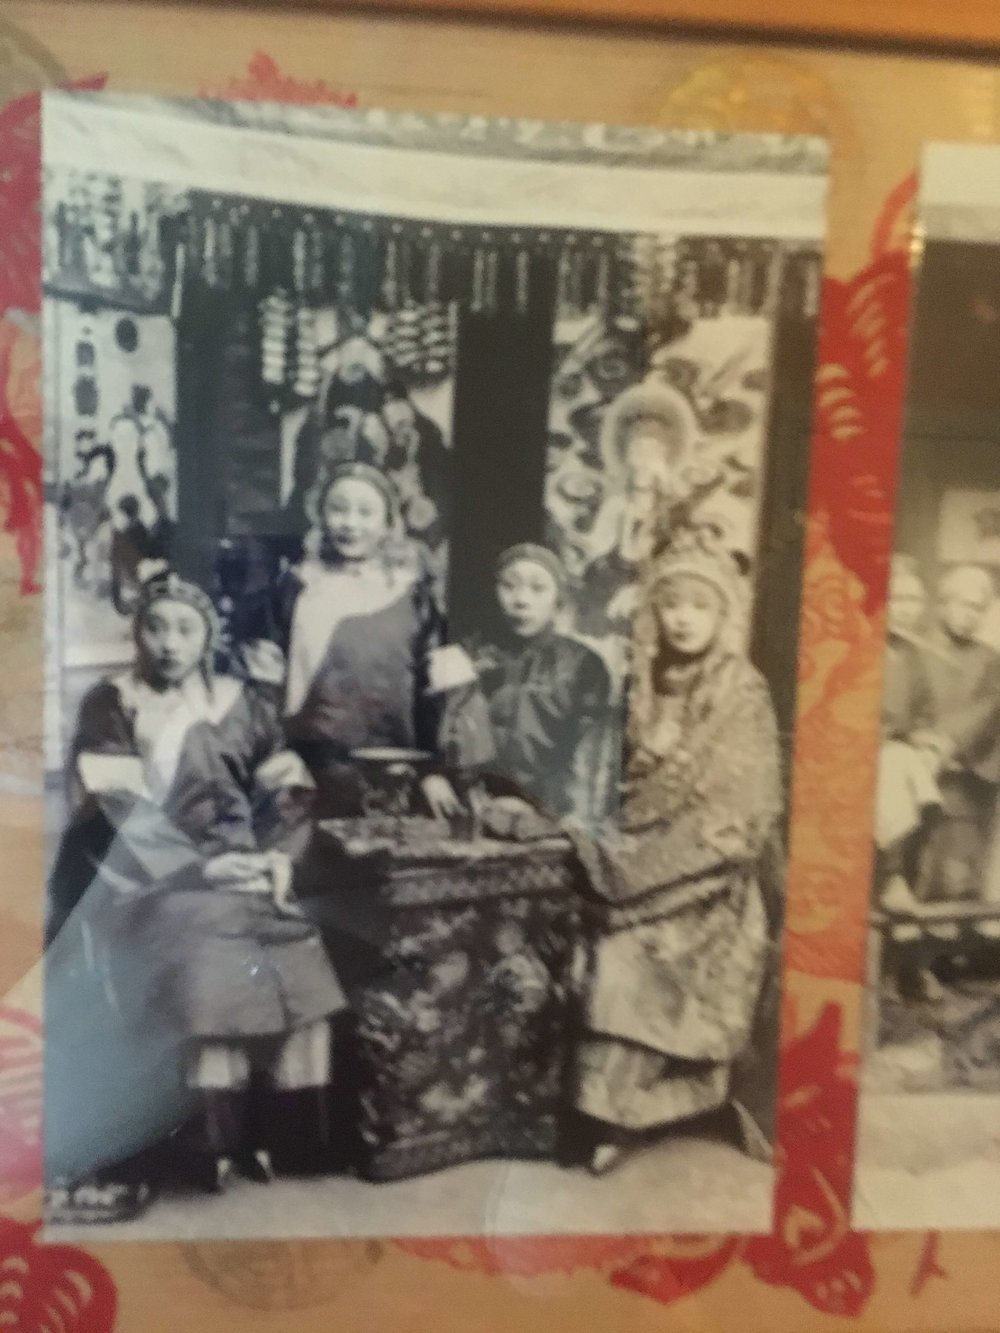 My Grandma's pictures of Shanghai in the early 1900's